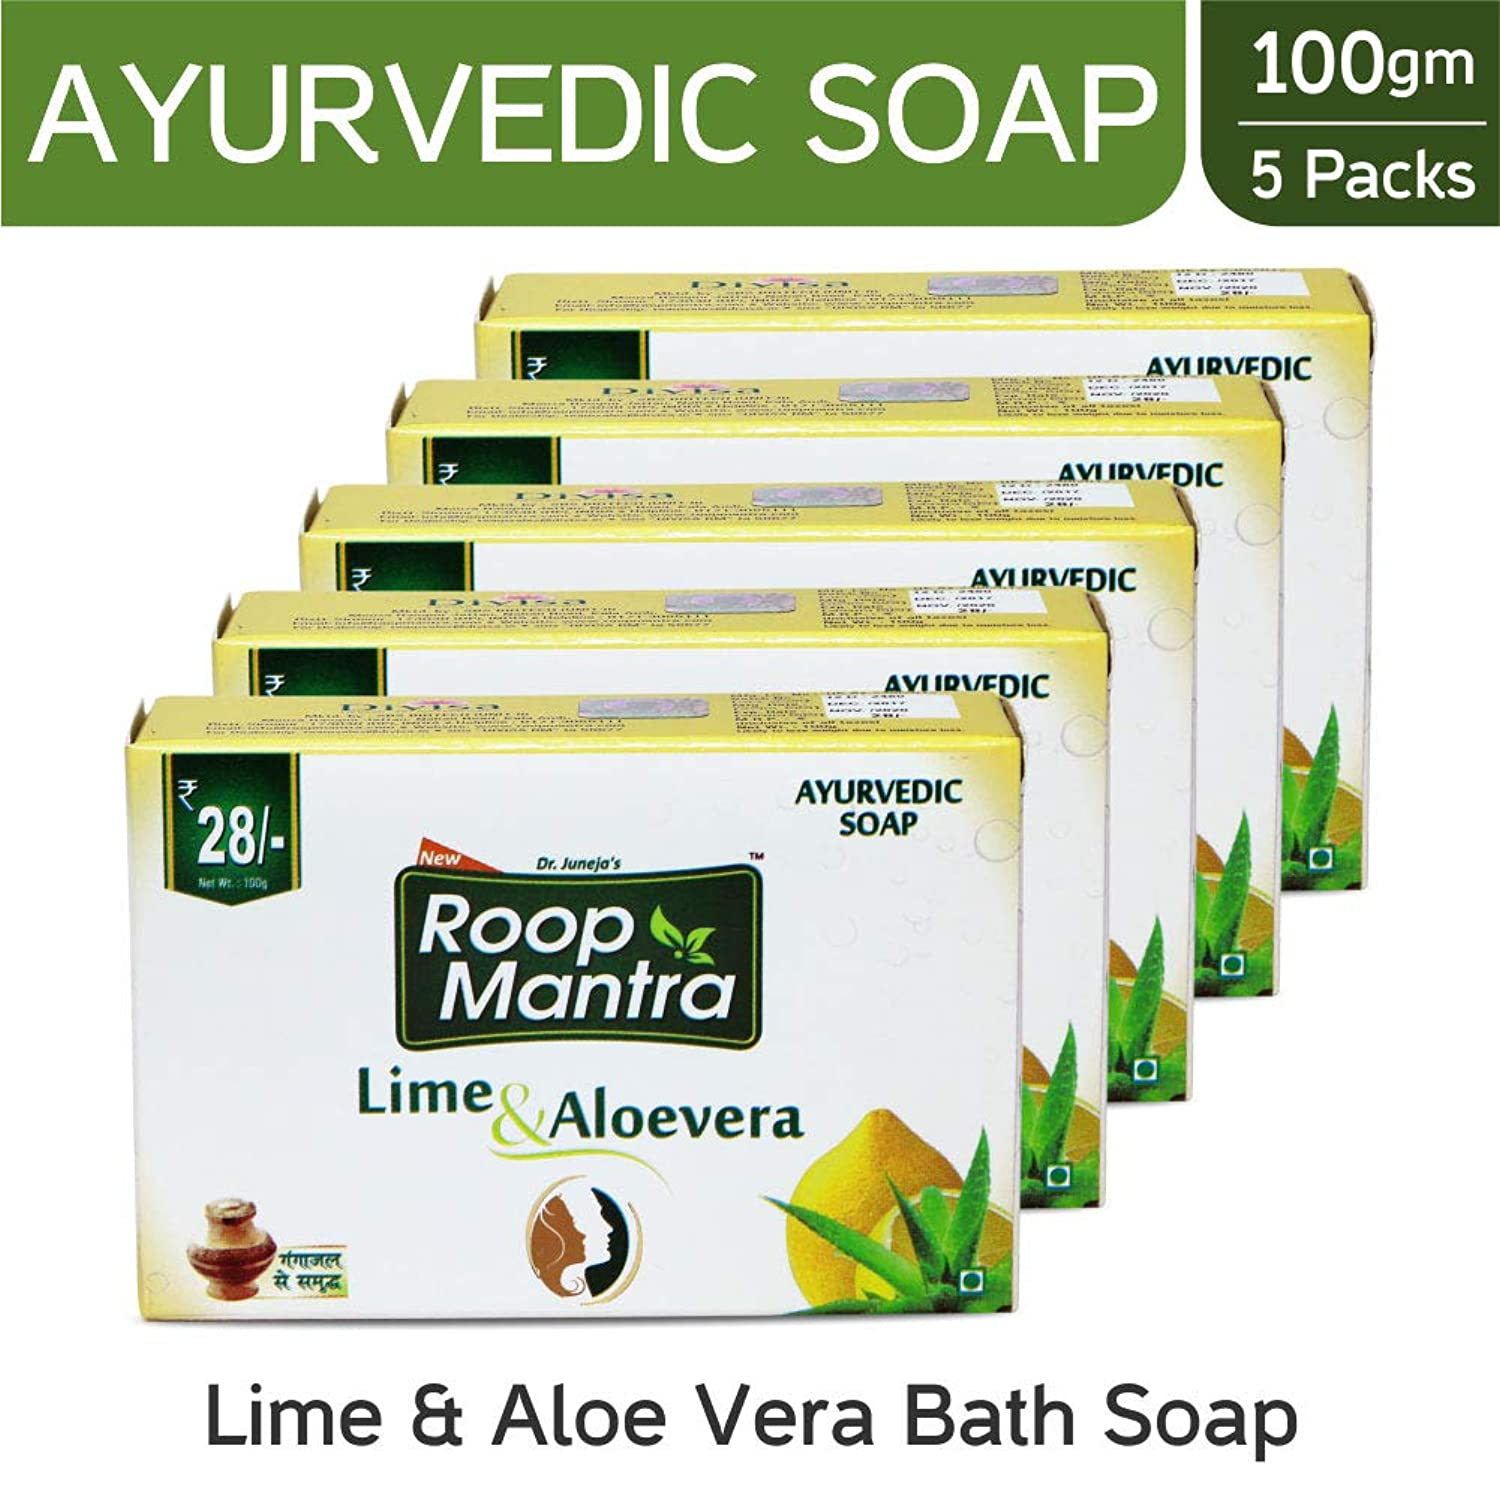 Roop Mantra Ayurvedic Bath Soap, Lime and Aloevera, 100g (Pack of 5)